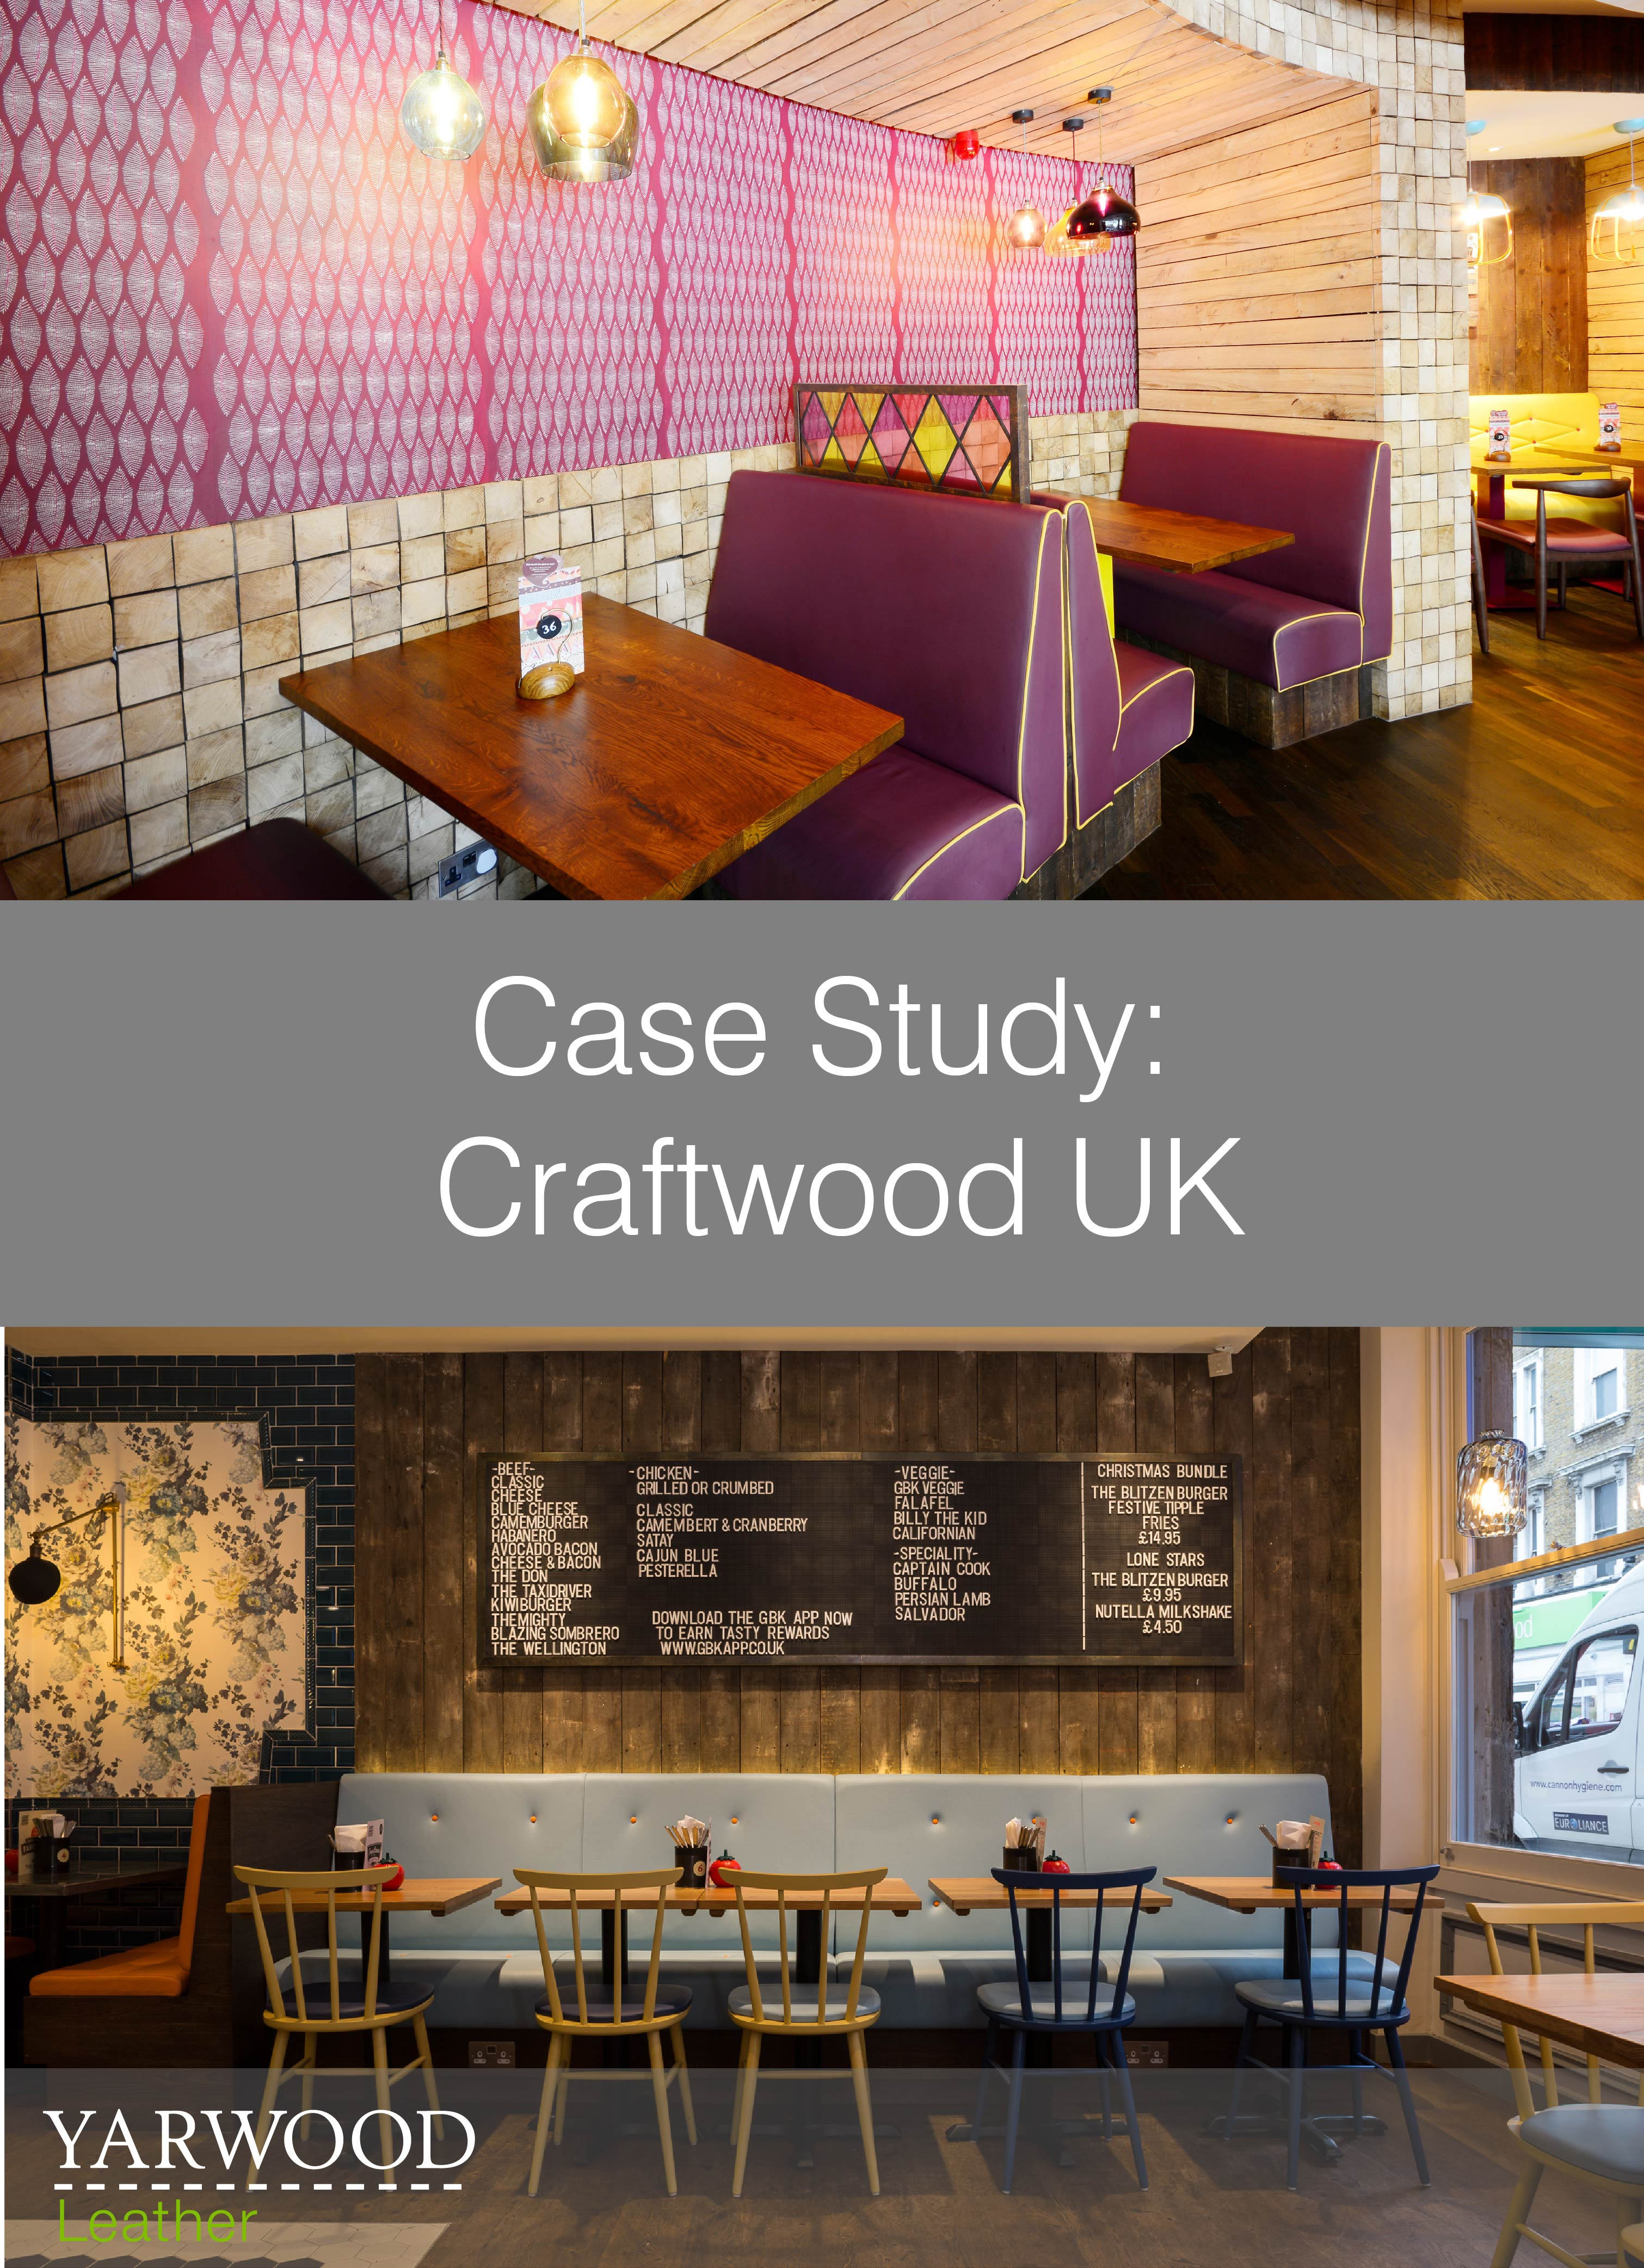 Restaurants up and down the country feature work from Craftwood UK, see some of their projects featuring Yarwood Leather